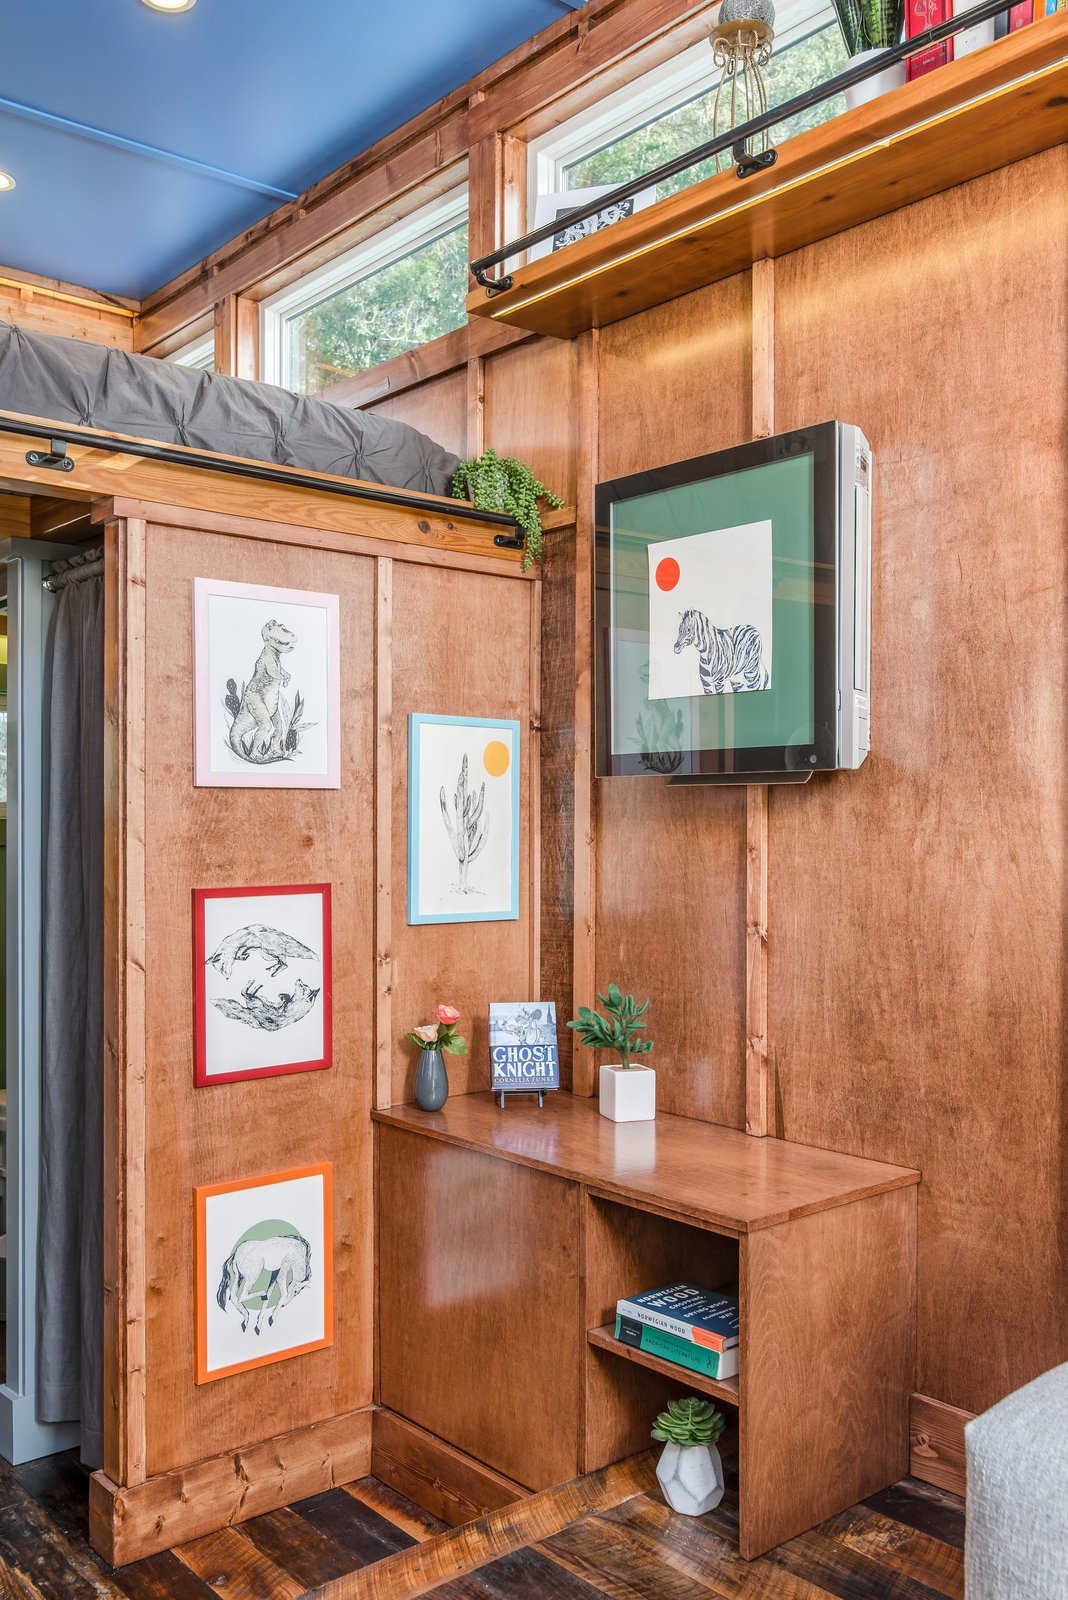 Storage Room and Cabinet Storage Type Shelving and storage was added as space allowed.  Photo 9 of 12 in This Tiny Home and Writing Studio Was Invented for a Children's Author